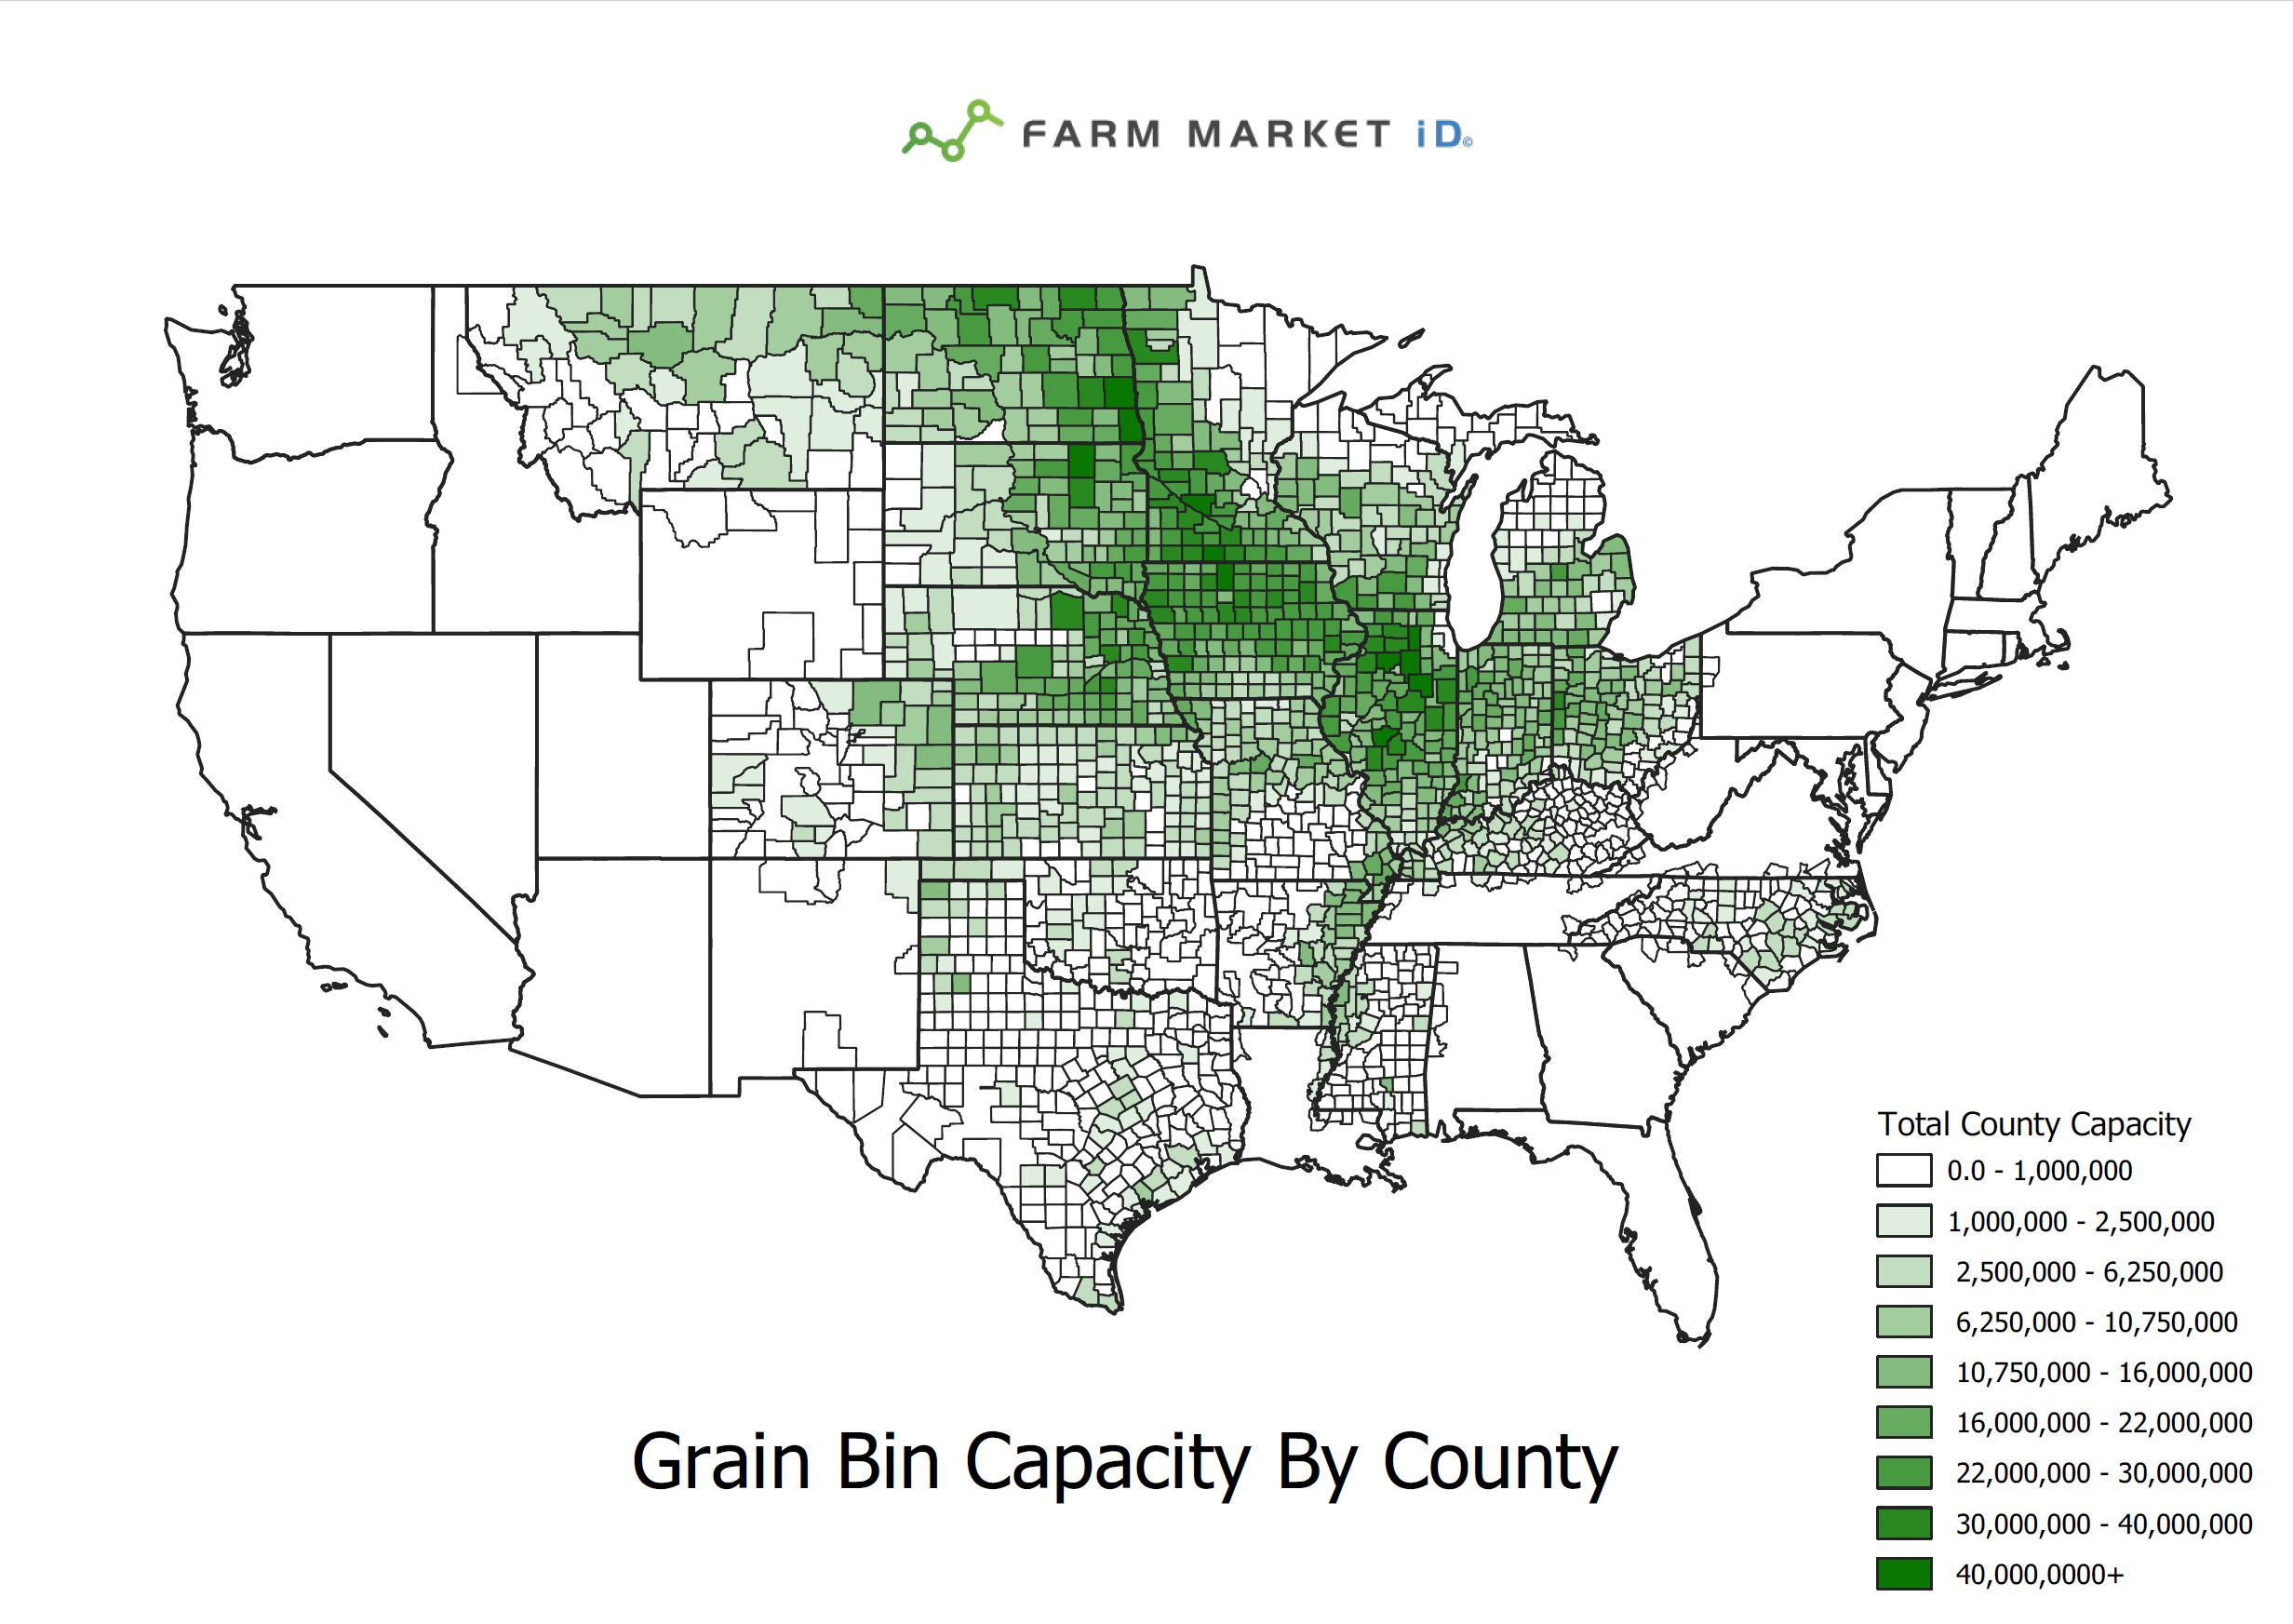 Farm MArket iD Grain Bin Capacity by County